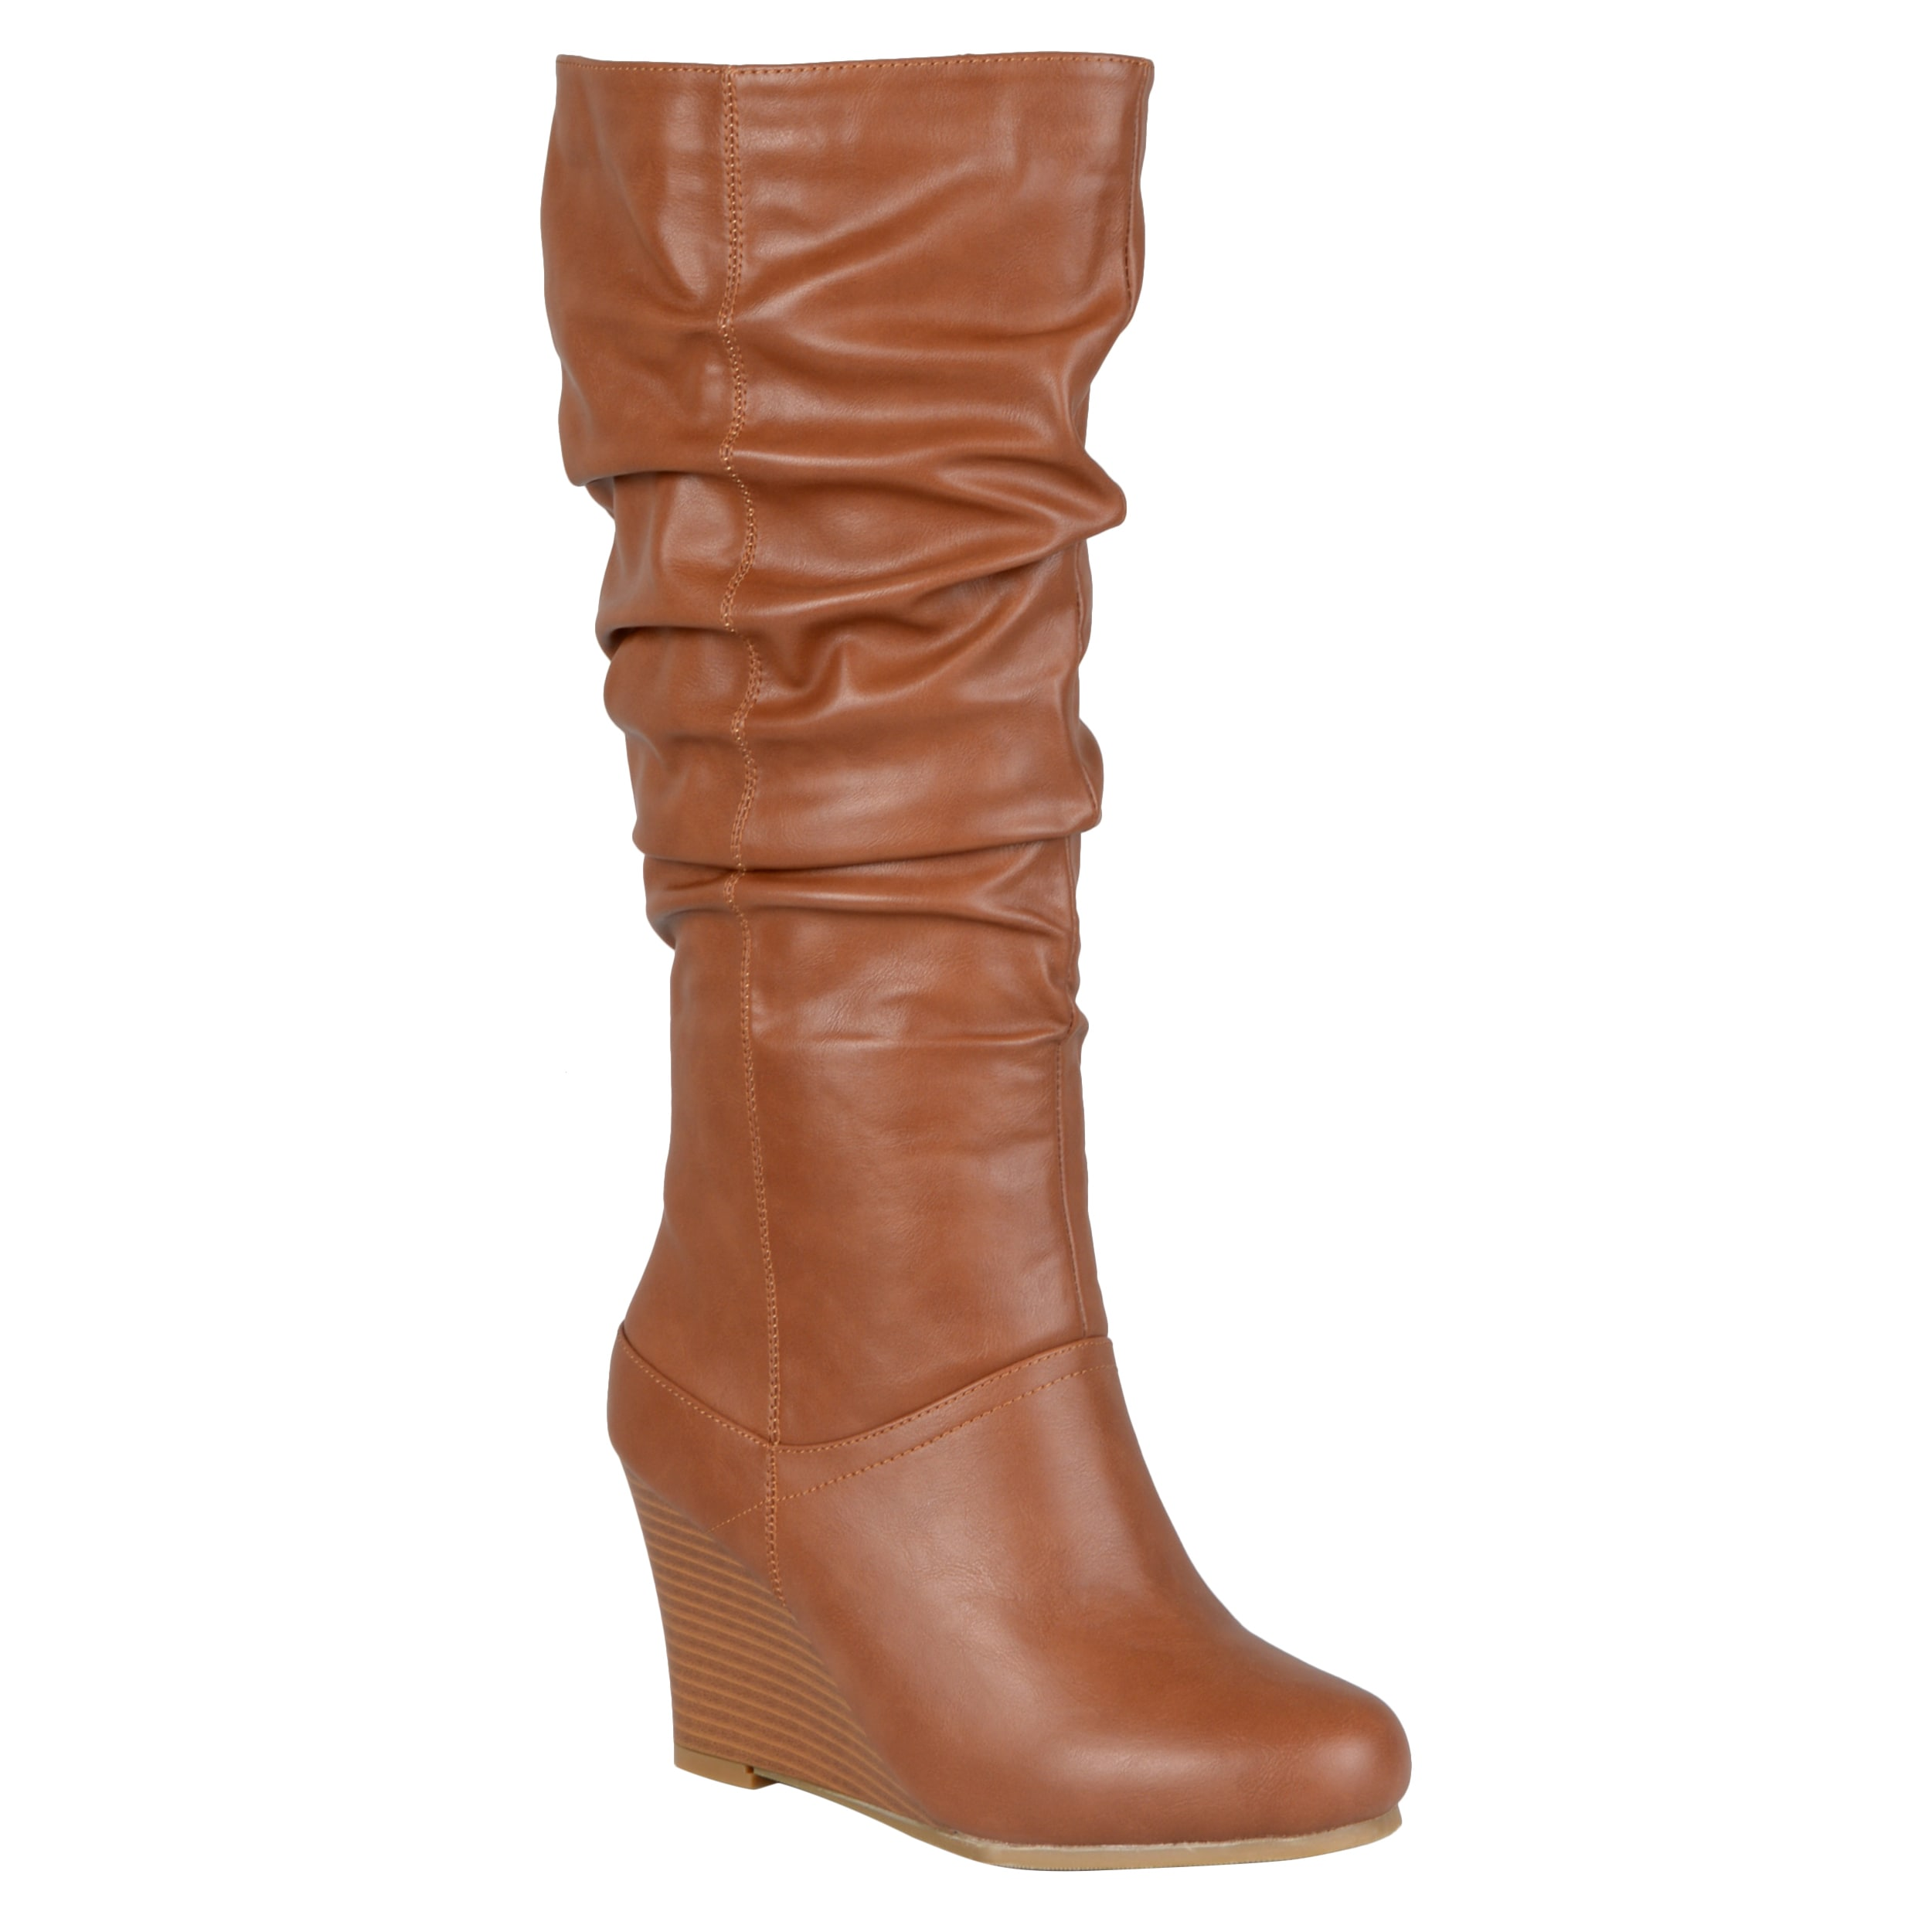 9e7214c40c2 Shop Journee Collection Women s  Hana  Regular and Wide-calf Slouch Knee- high Wedge Dress Boot - On Sale - Free Shipping Today - Overstock - 9346483